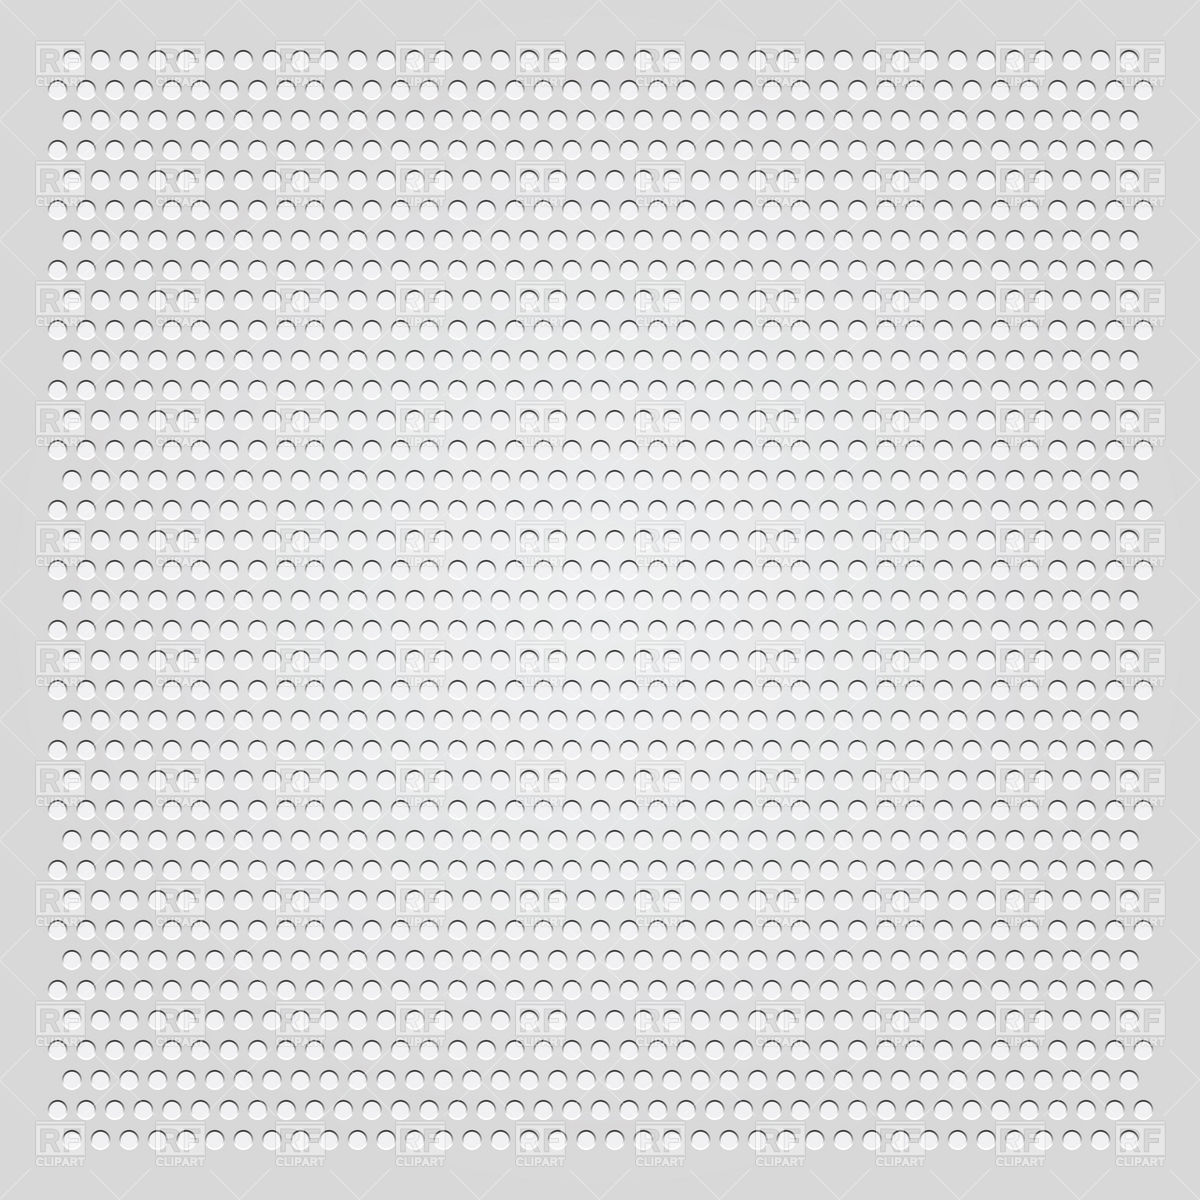 Metal perforated steel sheet Vector Image #18514.